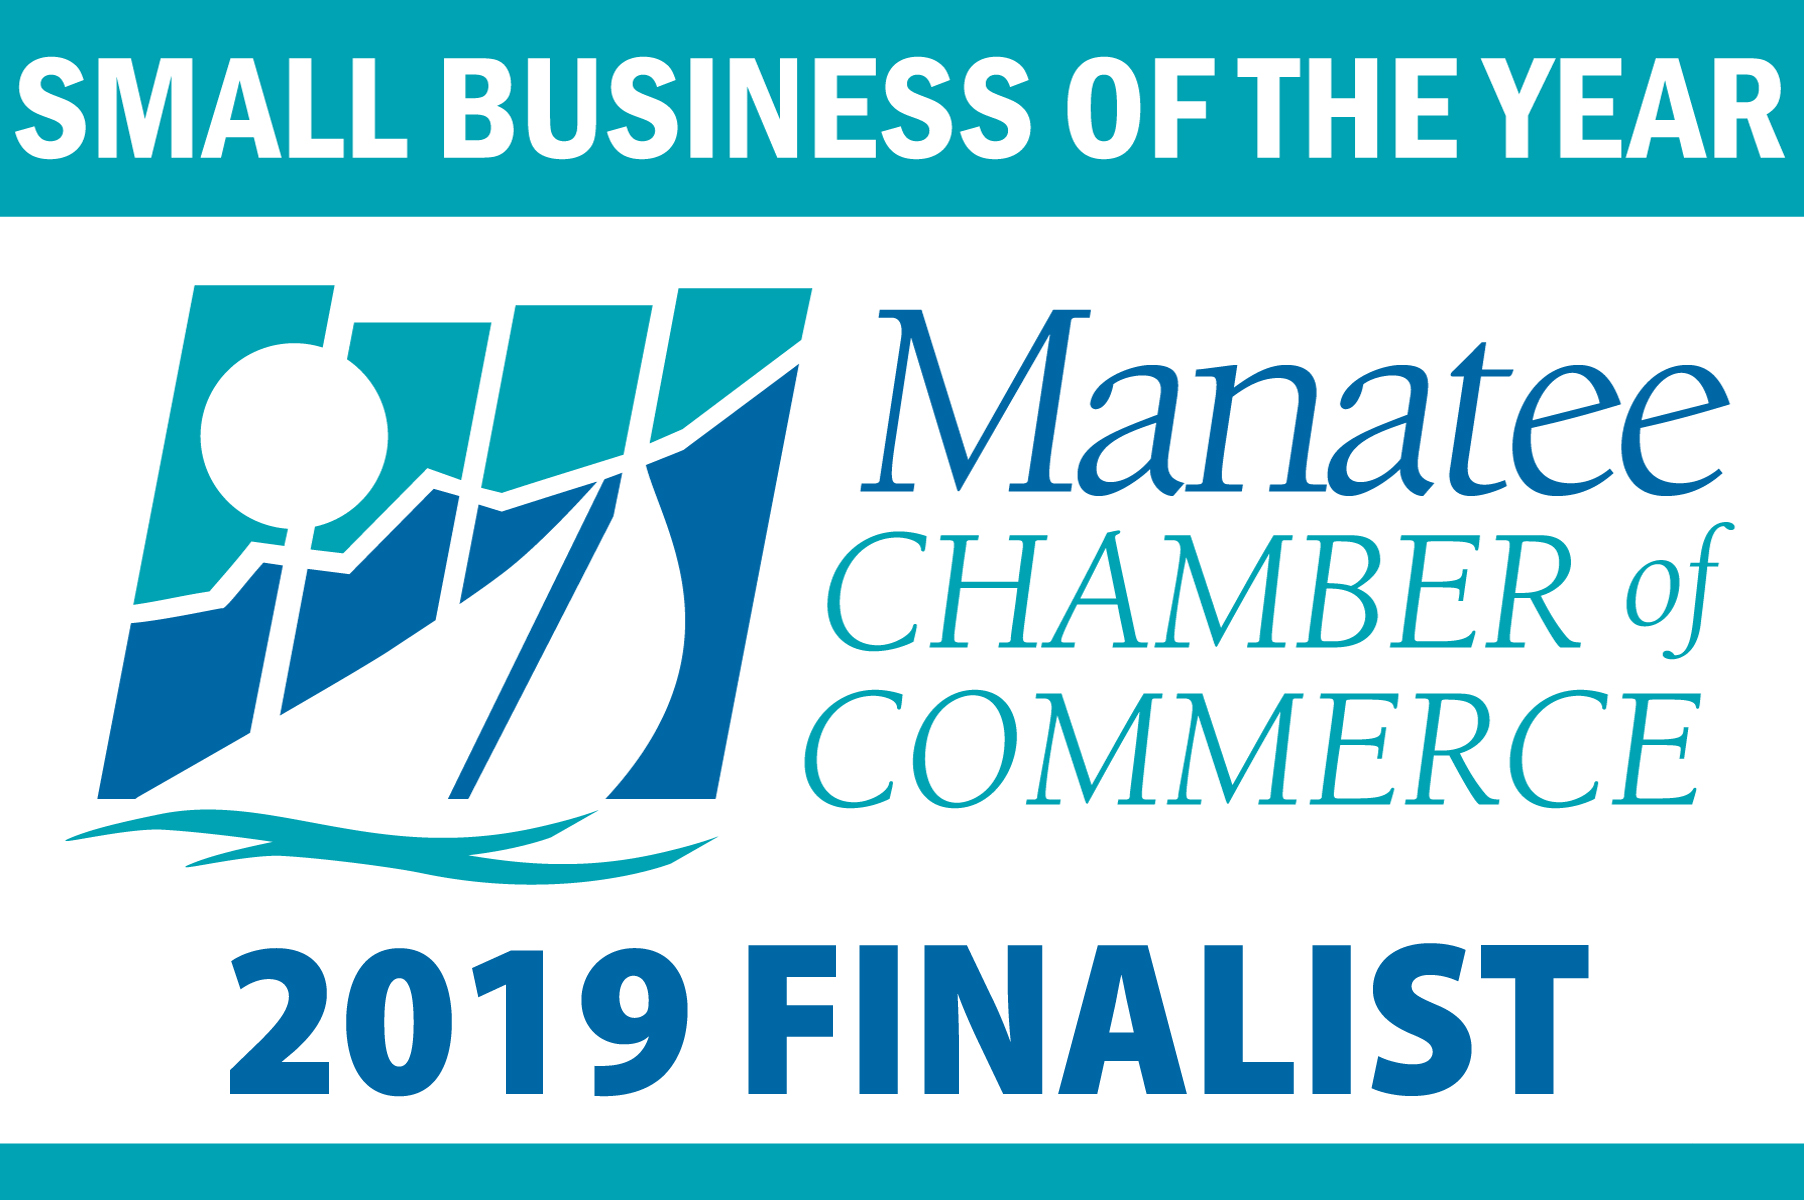 Finalist - Small Business of the Year - The awards ceremony will take place late August.We are honored and humbled to have even been nominated.A huge THANK YOU to all who support our family business!